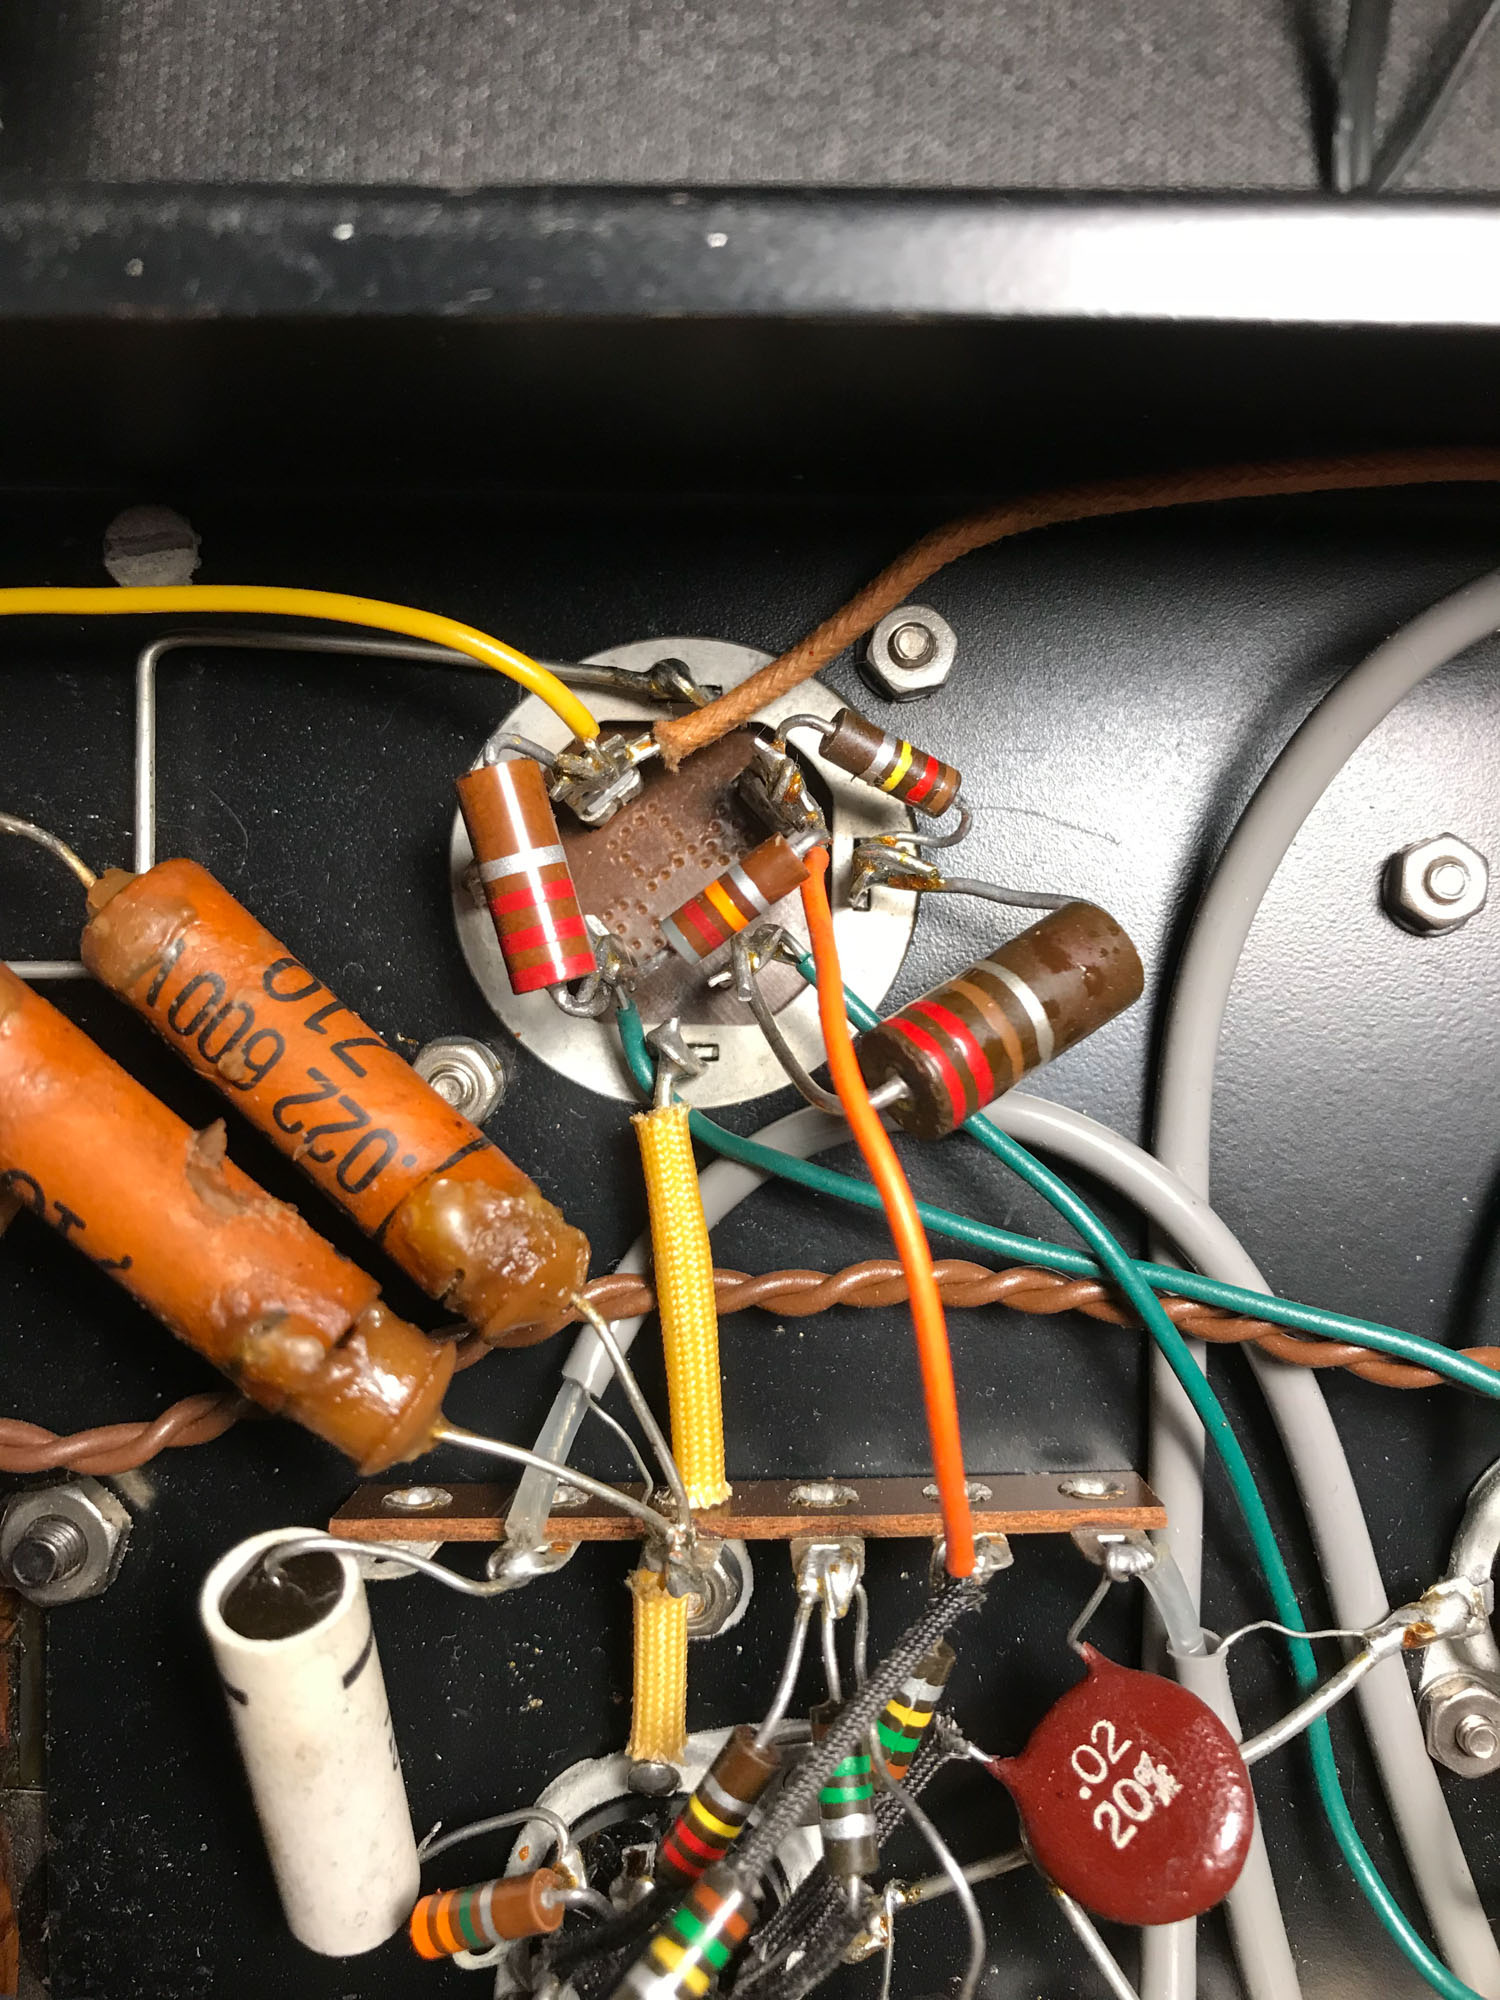 Knight Amp With Bad Capacitors